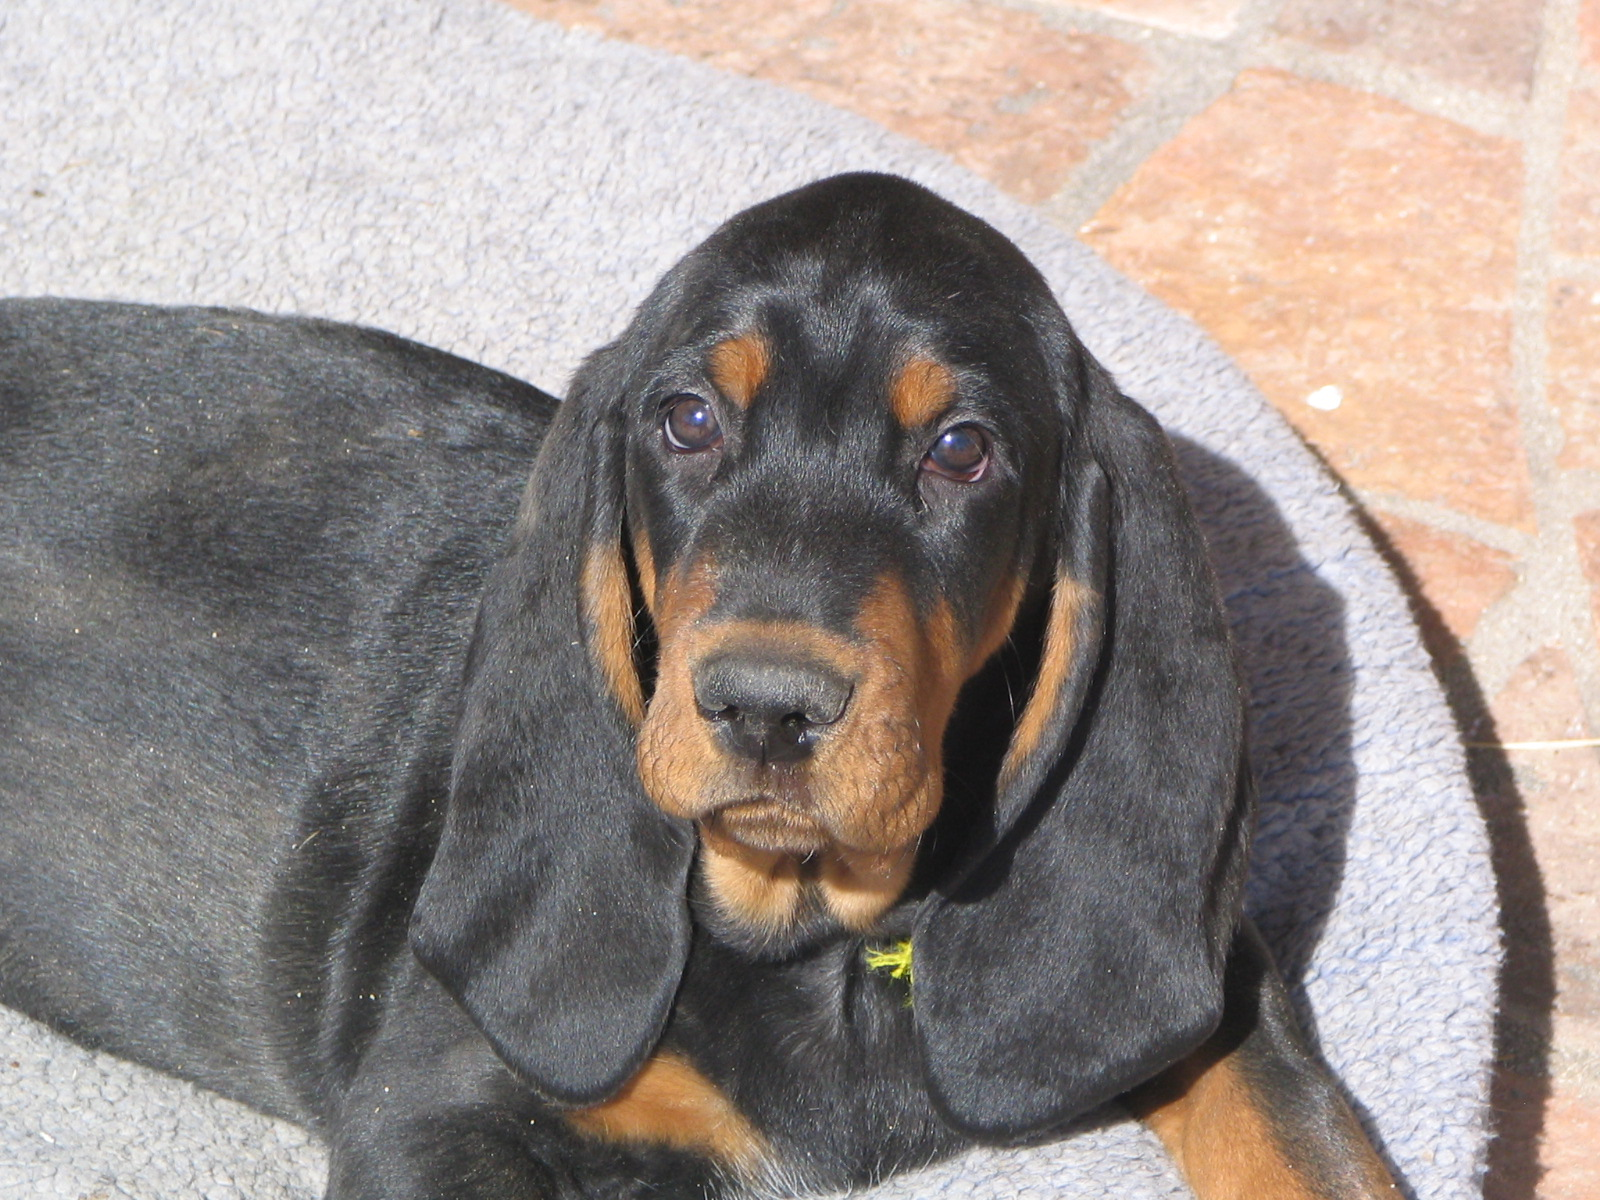 Black and Tan Coonhound - Wild and Pet